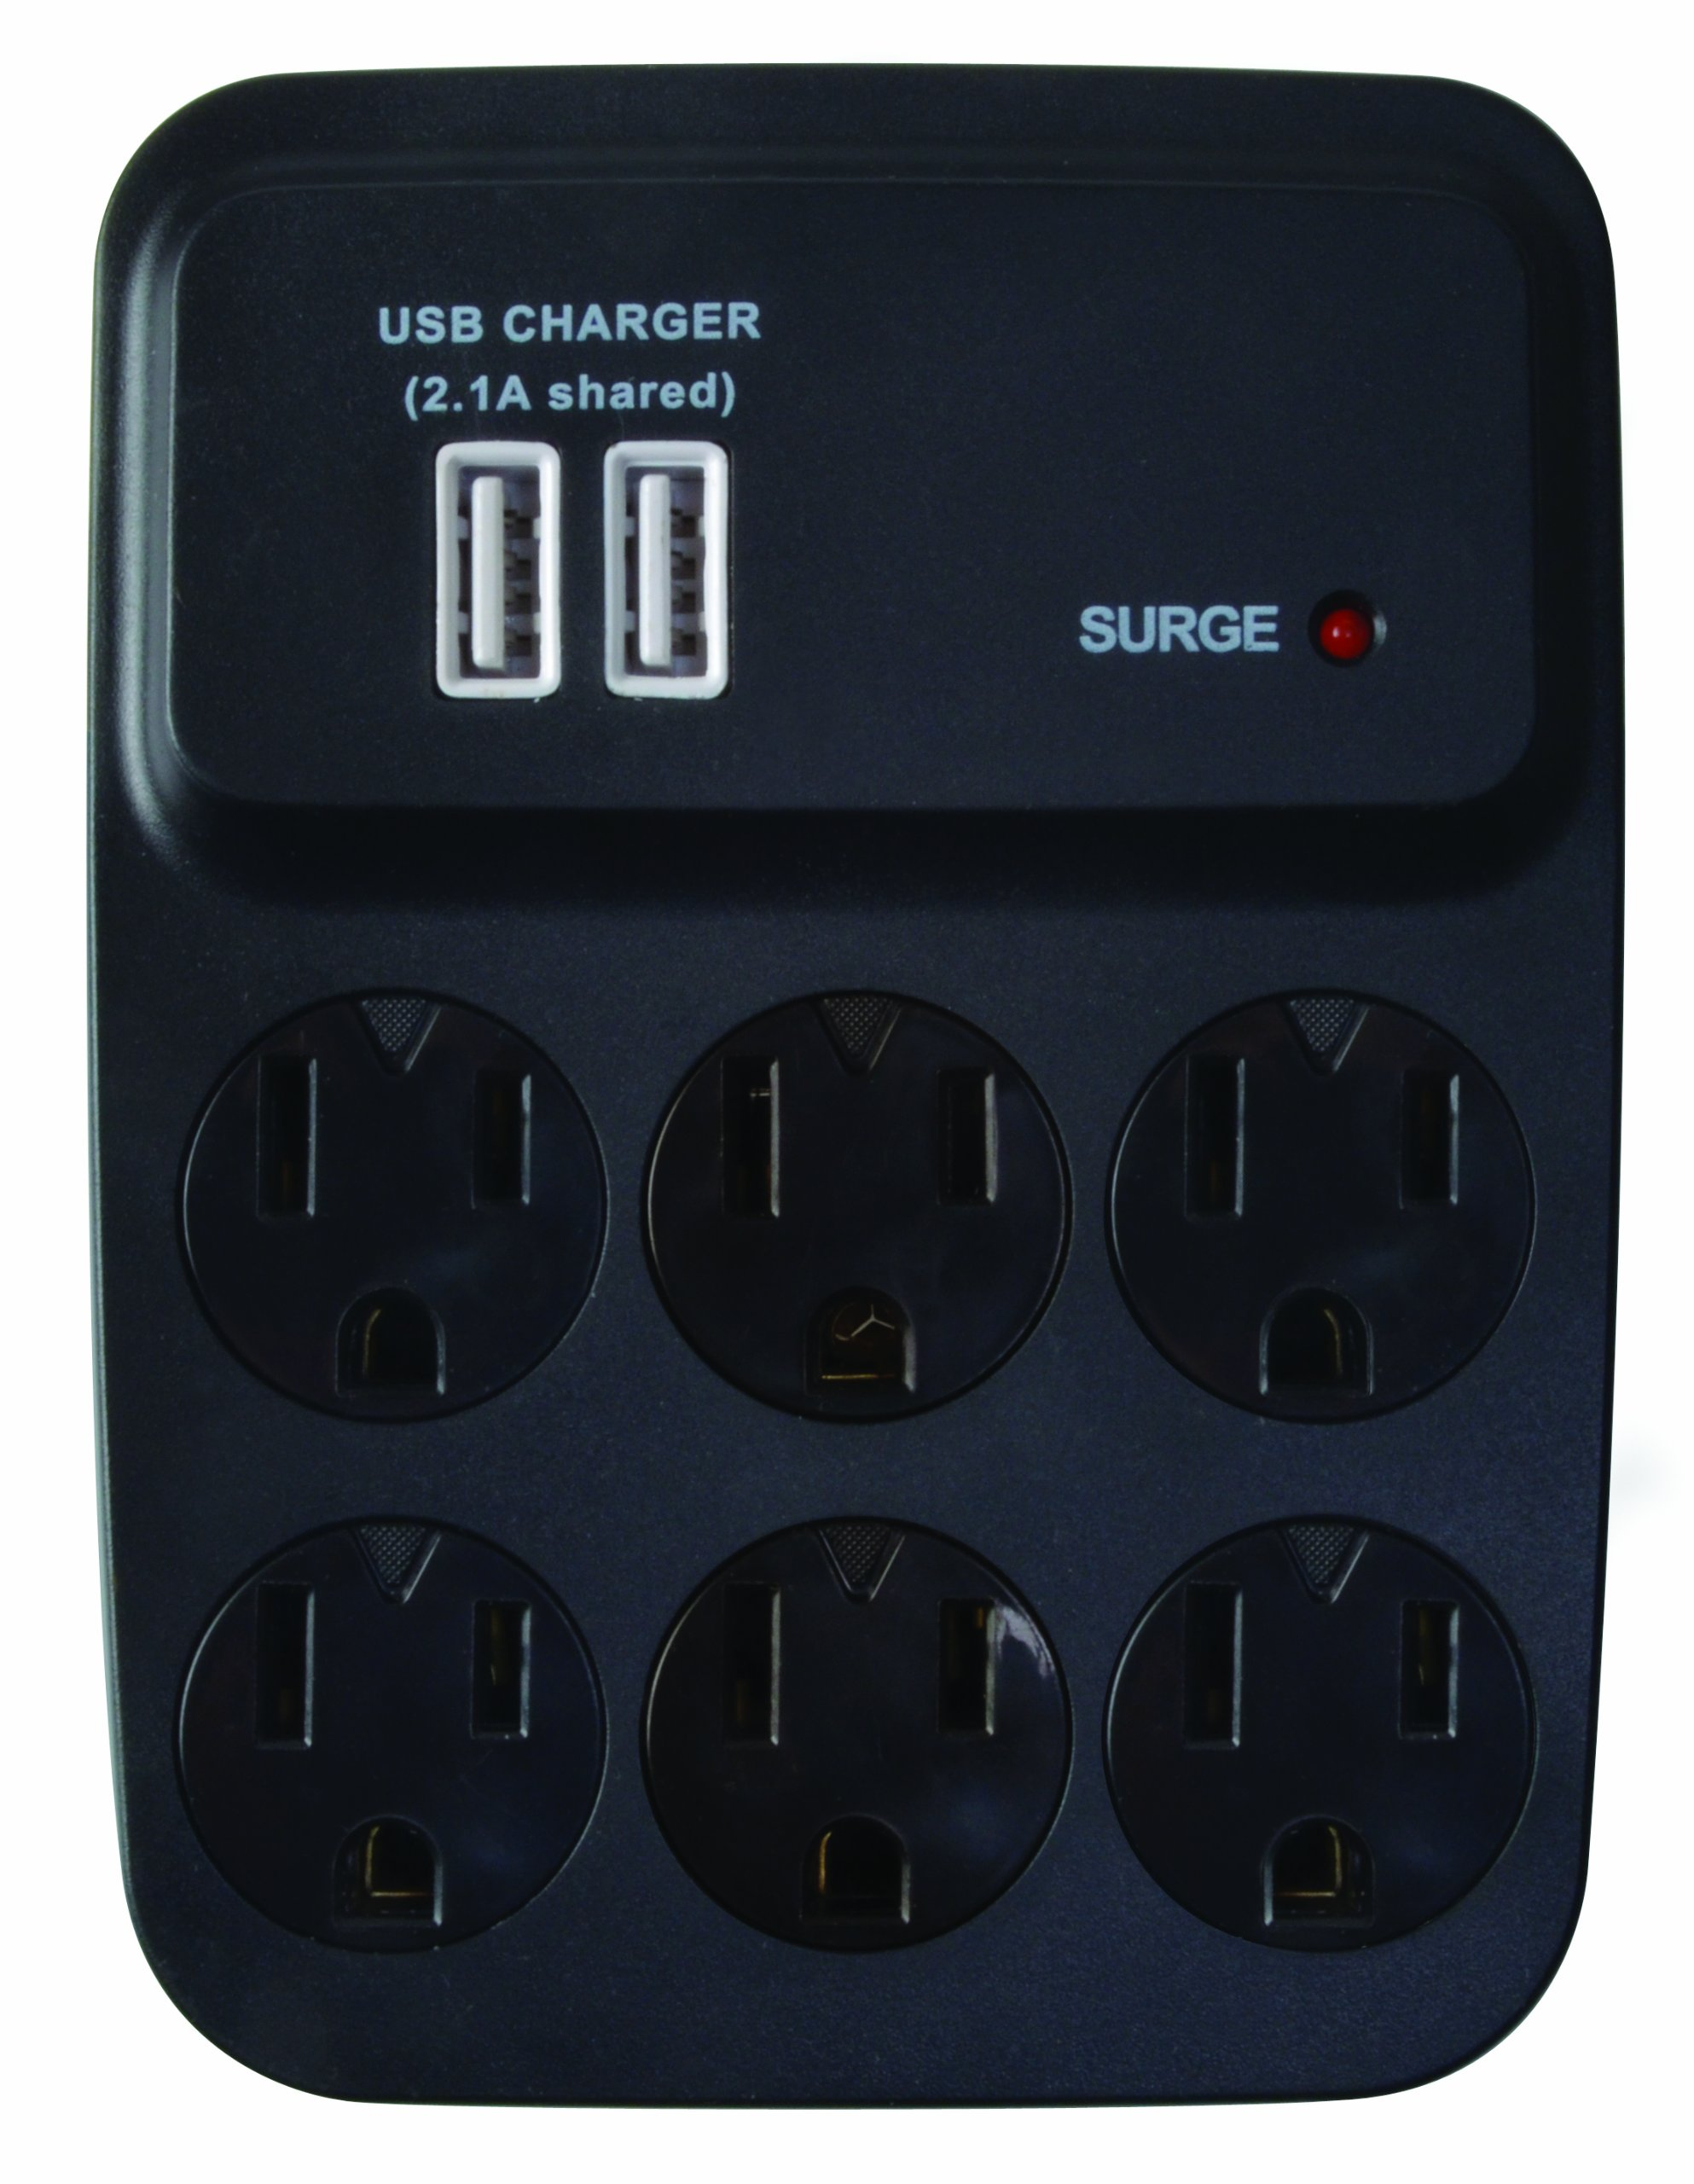 Woods 041052 Dual USB Charger 6-Outlet Surge Protector with Built-in Cradle, 900-Joules of Protection